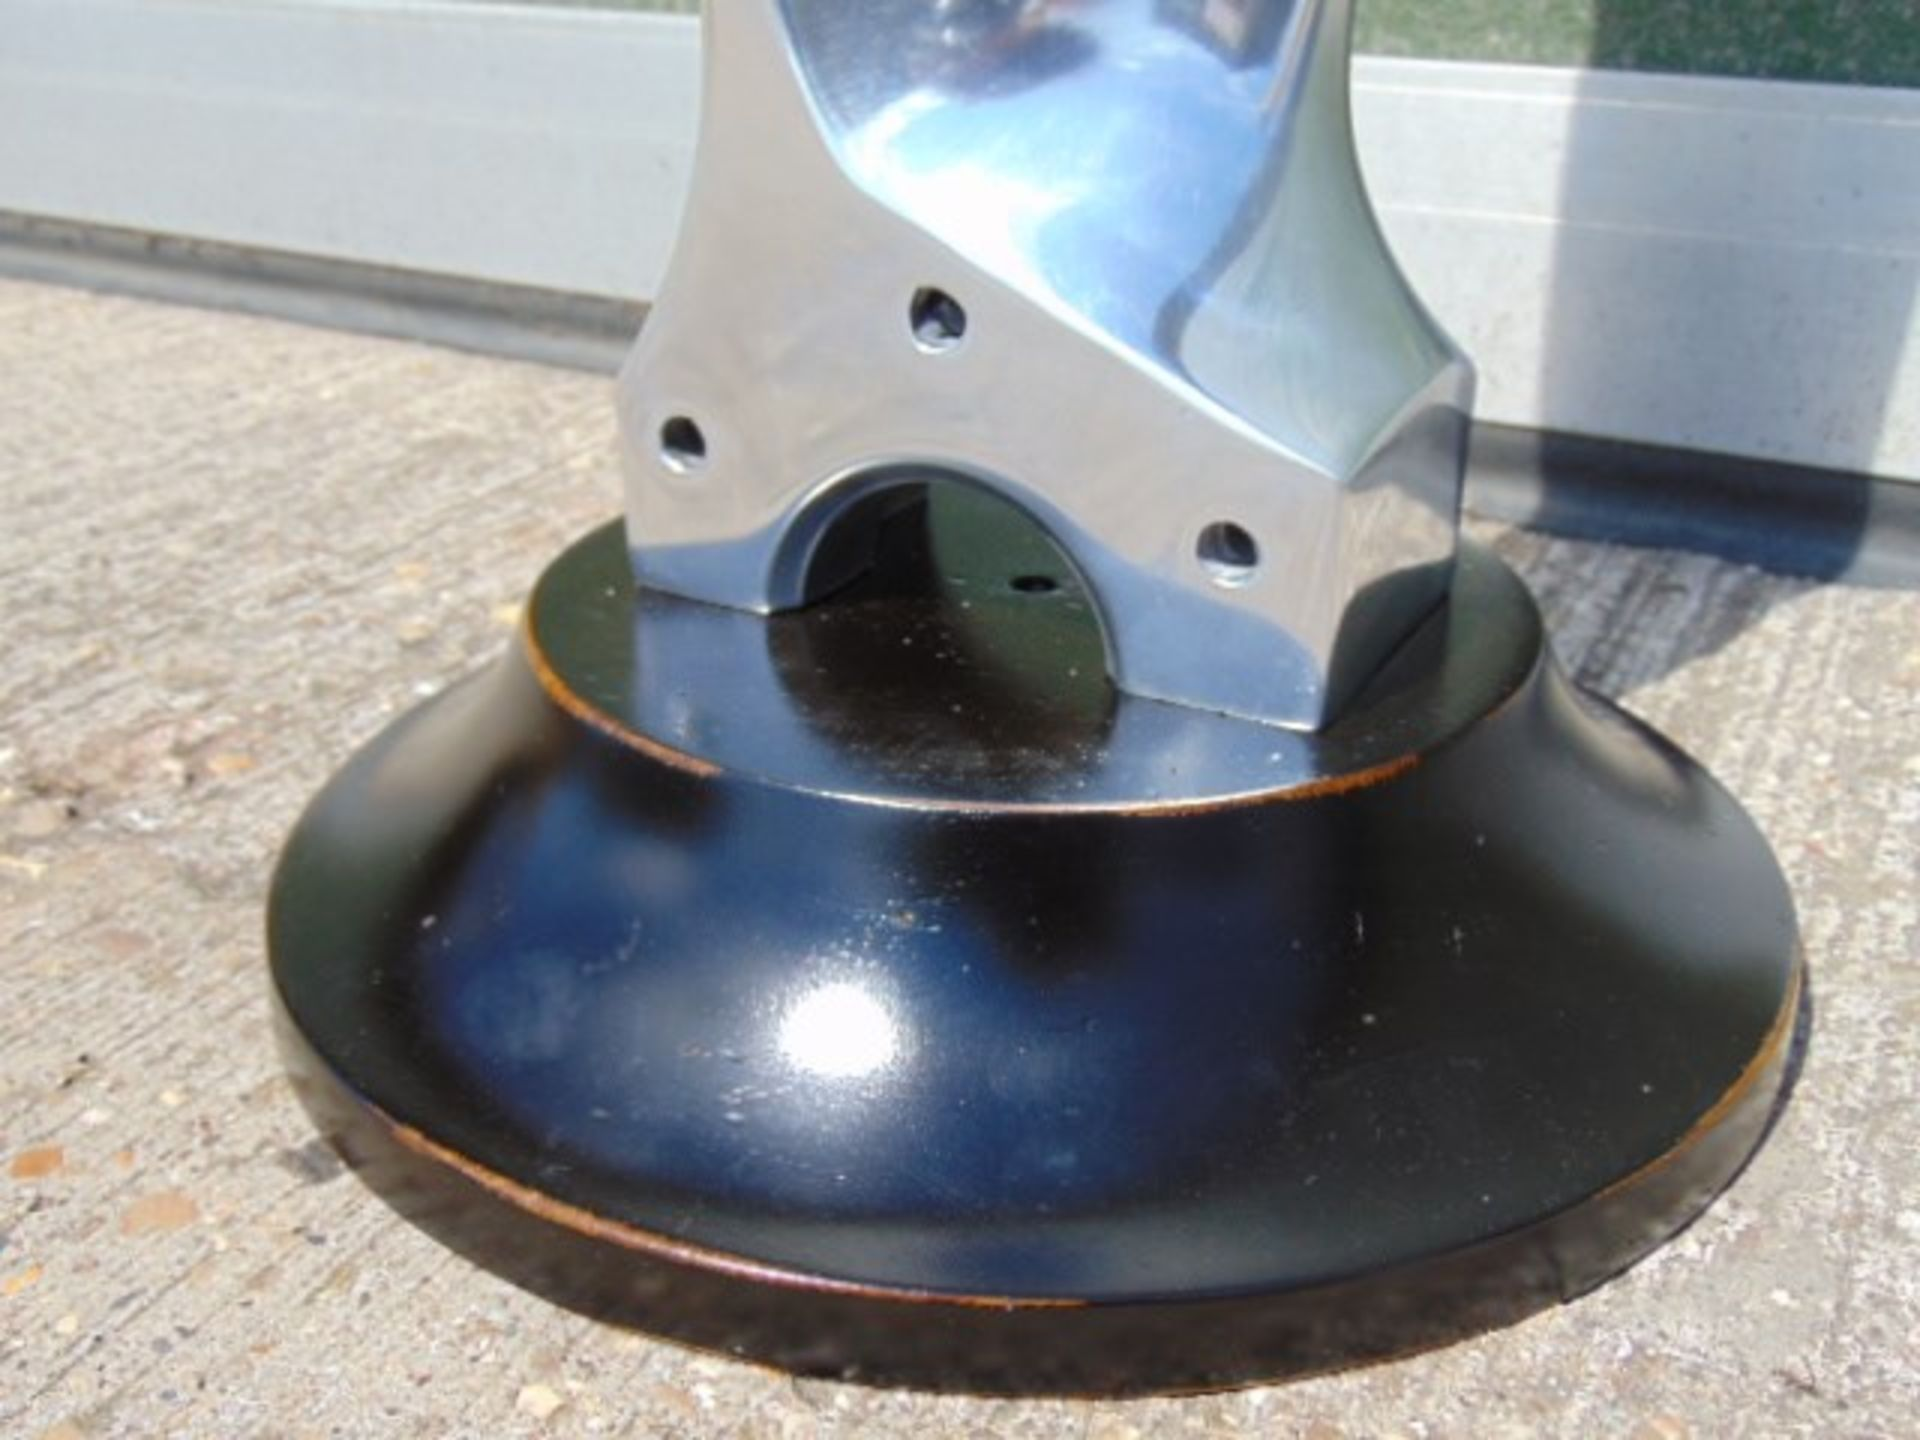 Lot 283 - Polished Aluminium Propeller Blade on Stand